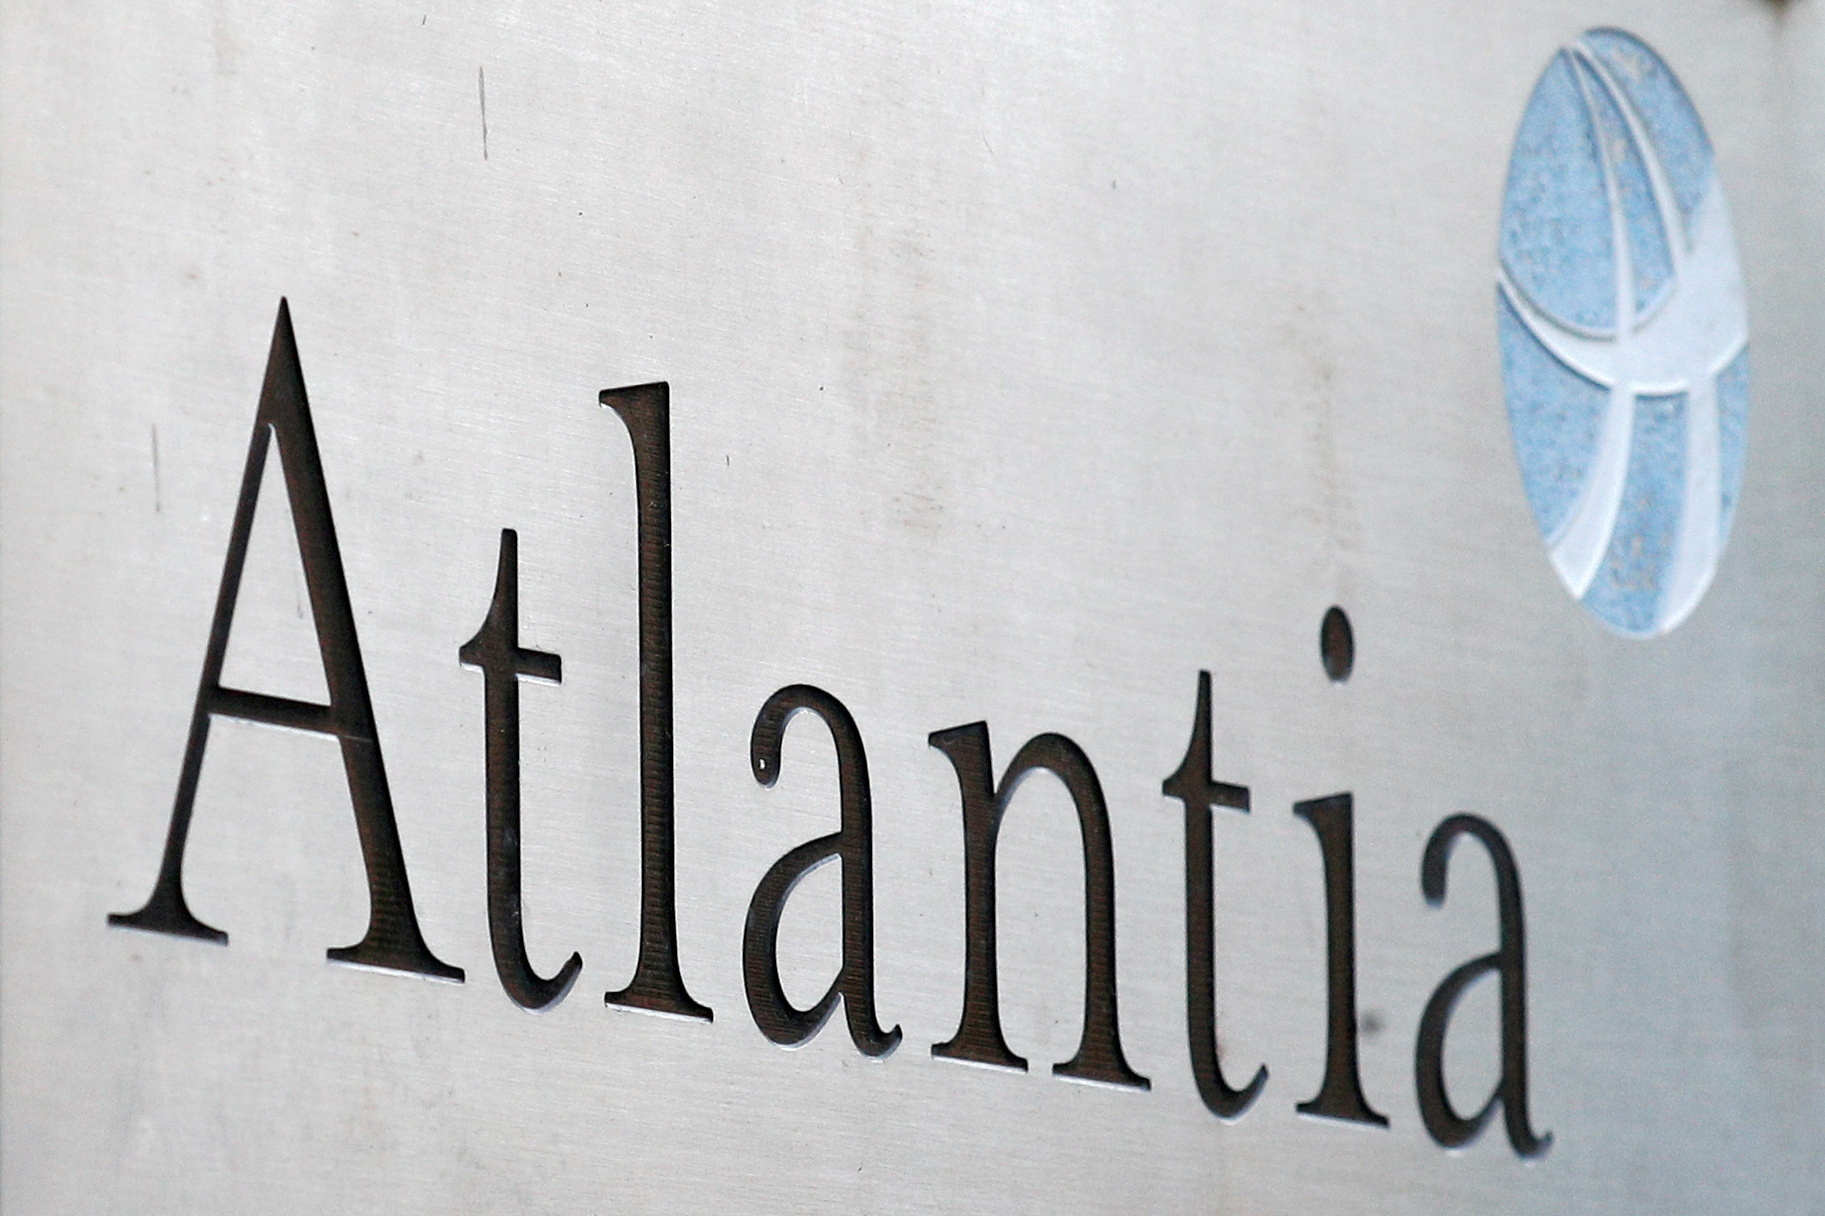 The logo of an infrastructure group Atlantia is seen outside their headquarters, in Rome, Italy October 5, 2020. REUTERS/Guglielmo Mangiapane/File Photo